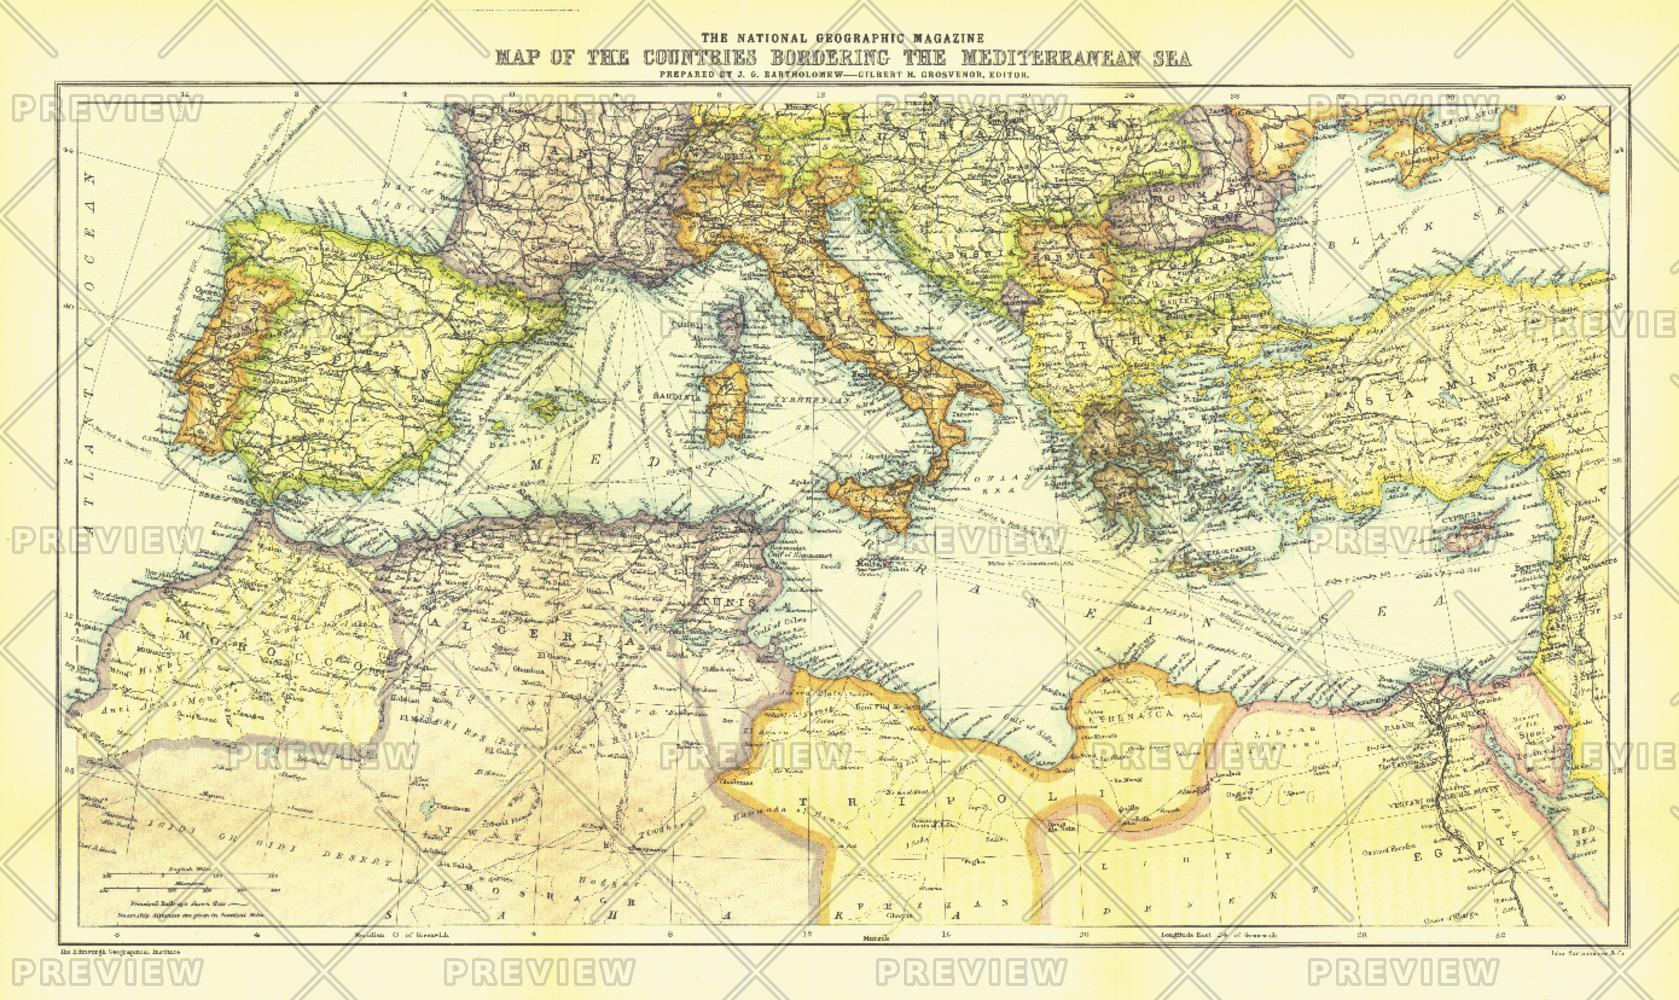 Countries Bordering the Mediterranean Sea - Published 1912